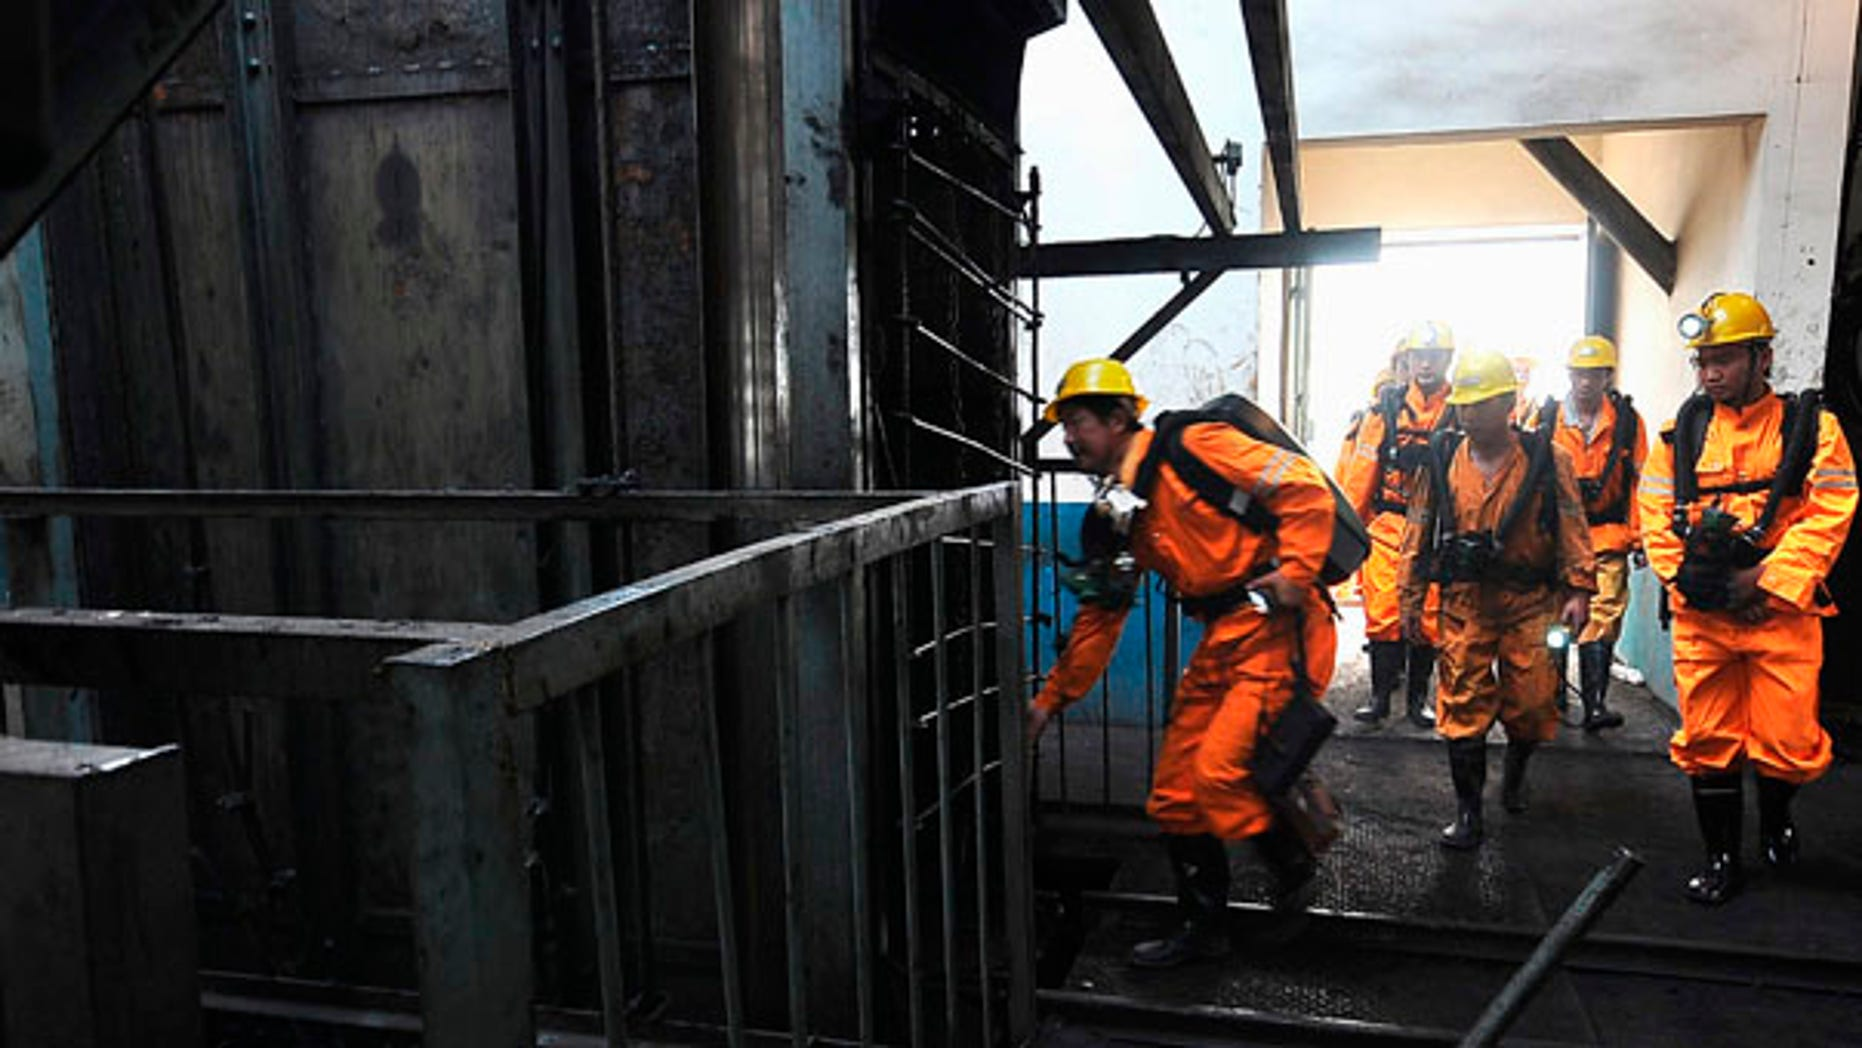 Rescue workers prepare to search for missing miners after a blast at the Xingdong No.2 Coal Mine in Pingdingshan city in central China's Henan province on Monday, June 21, 2010.   State media say at least 46 miners were killed when an explosion ripped through the coal mine. (AP Photo)**CHINA OUT**